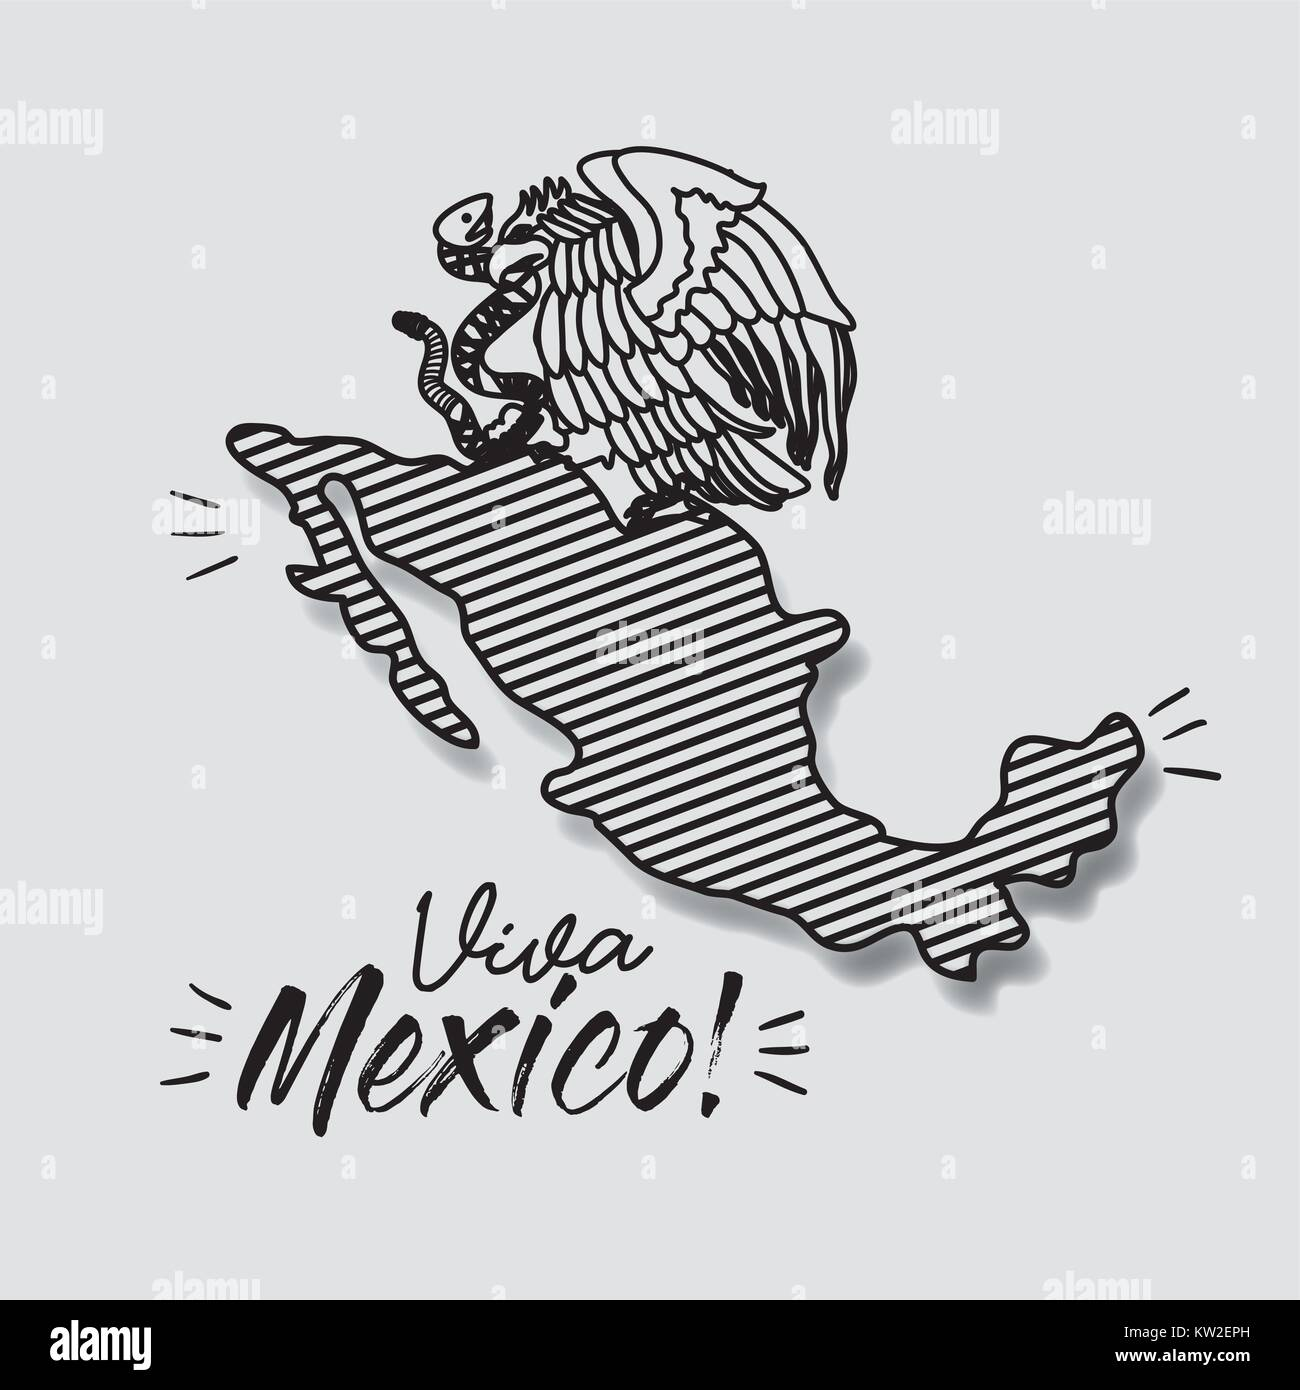 viva mexico poster with map striped and emblem of eagle with snake in black silhouette - Stock Image